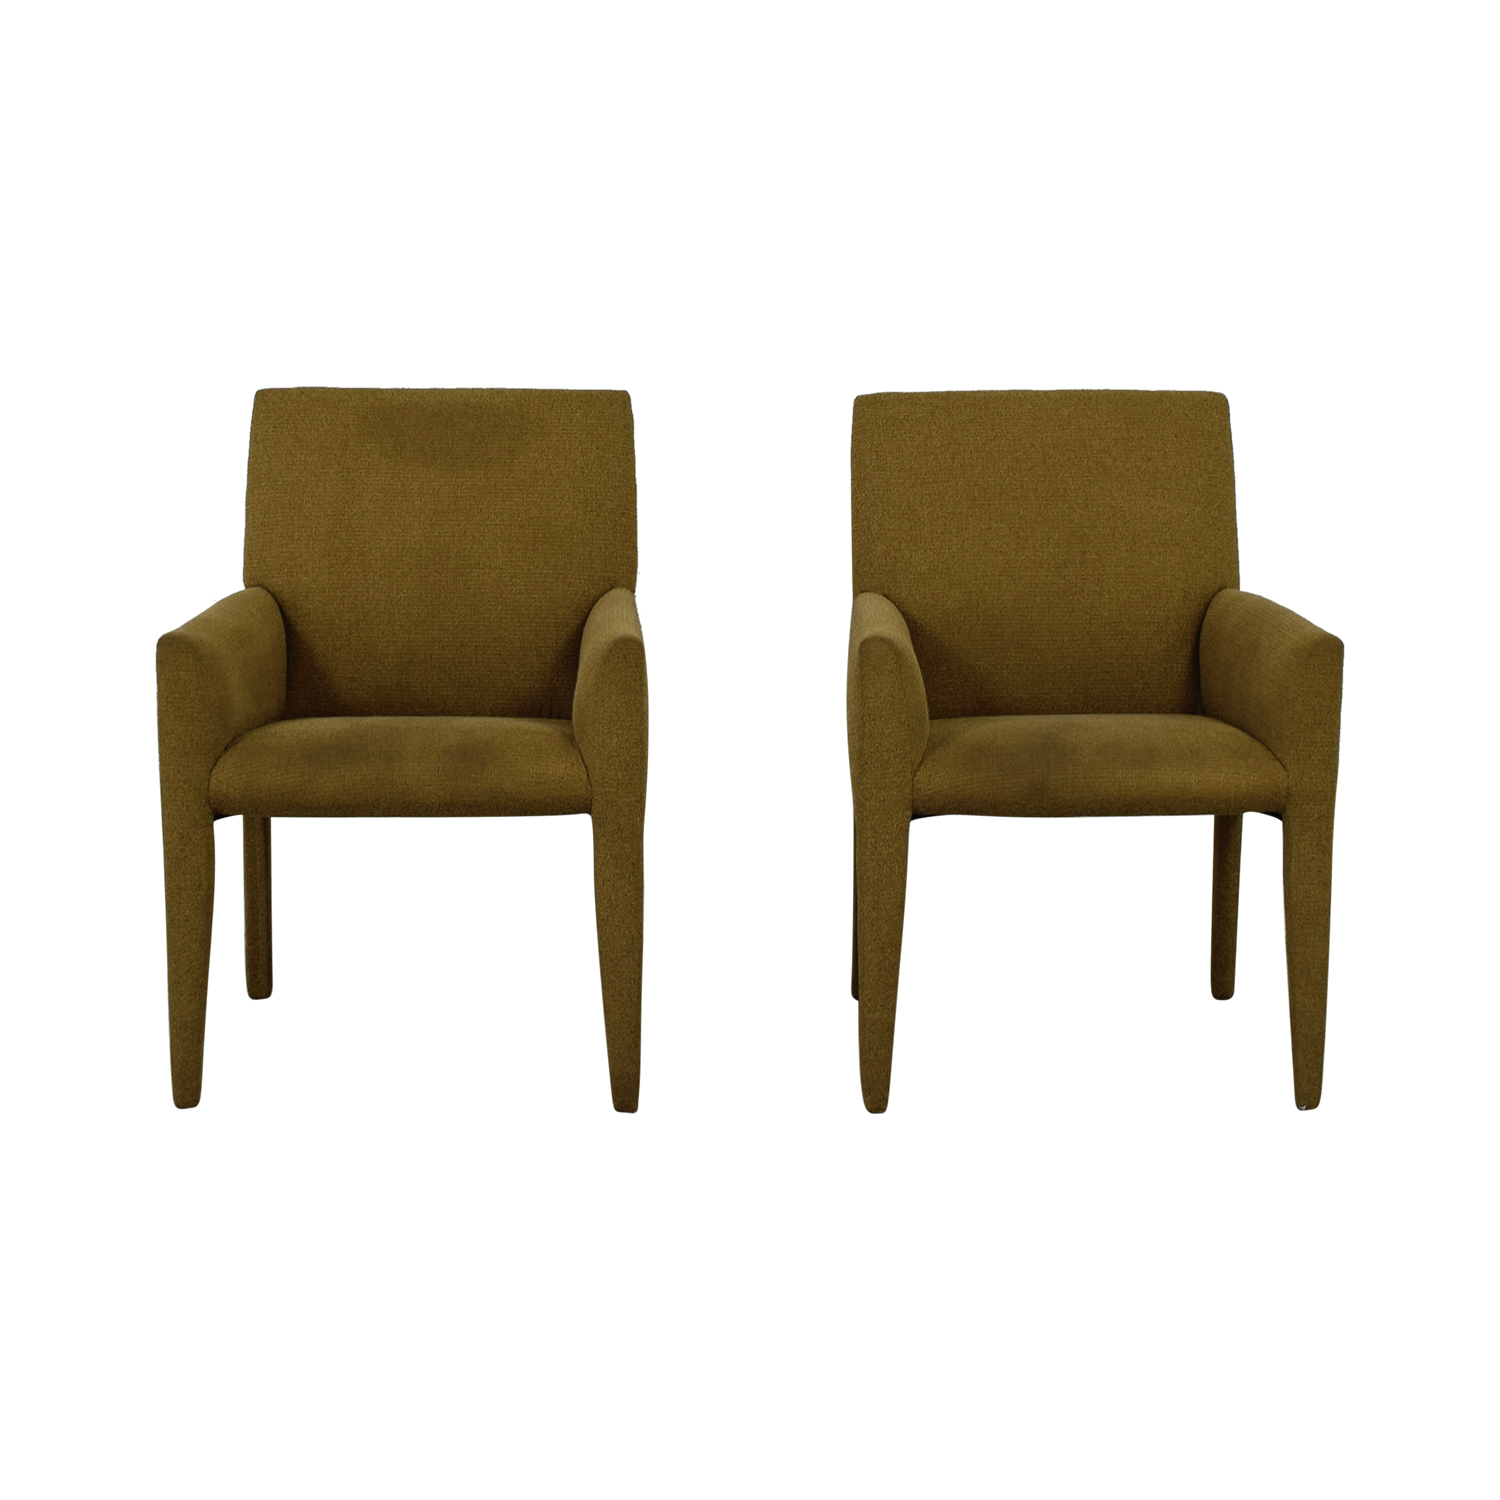 Macy's Macy's Olive Green Club Chairs dimensions